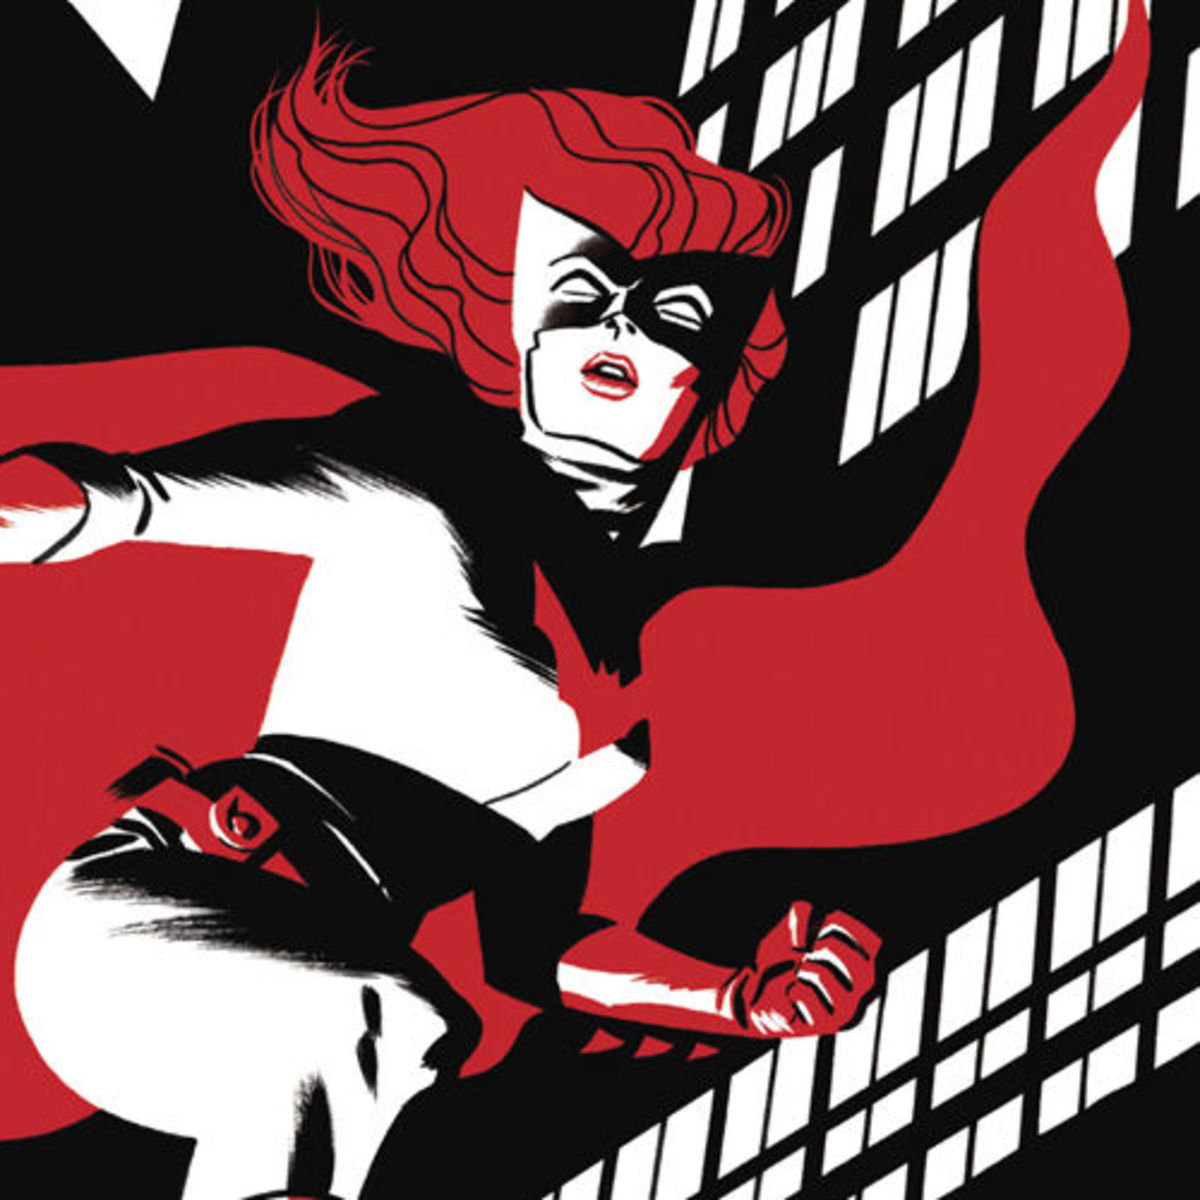 The CW Developing Batwoman TV Series With Lesbian Superhero Lead